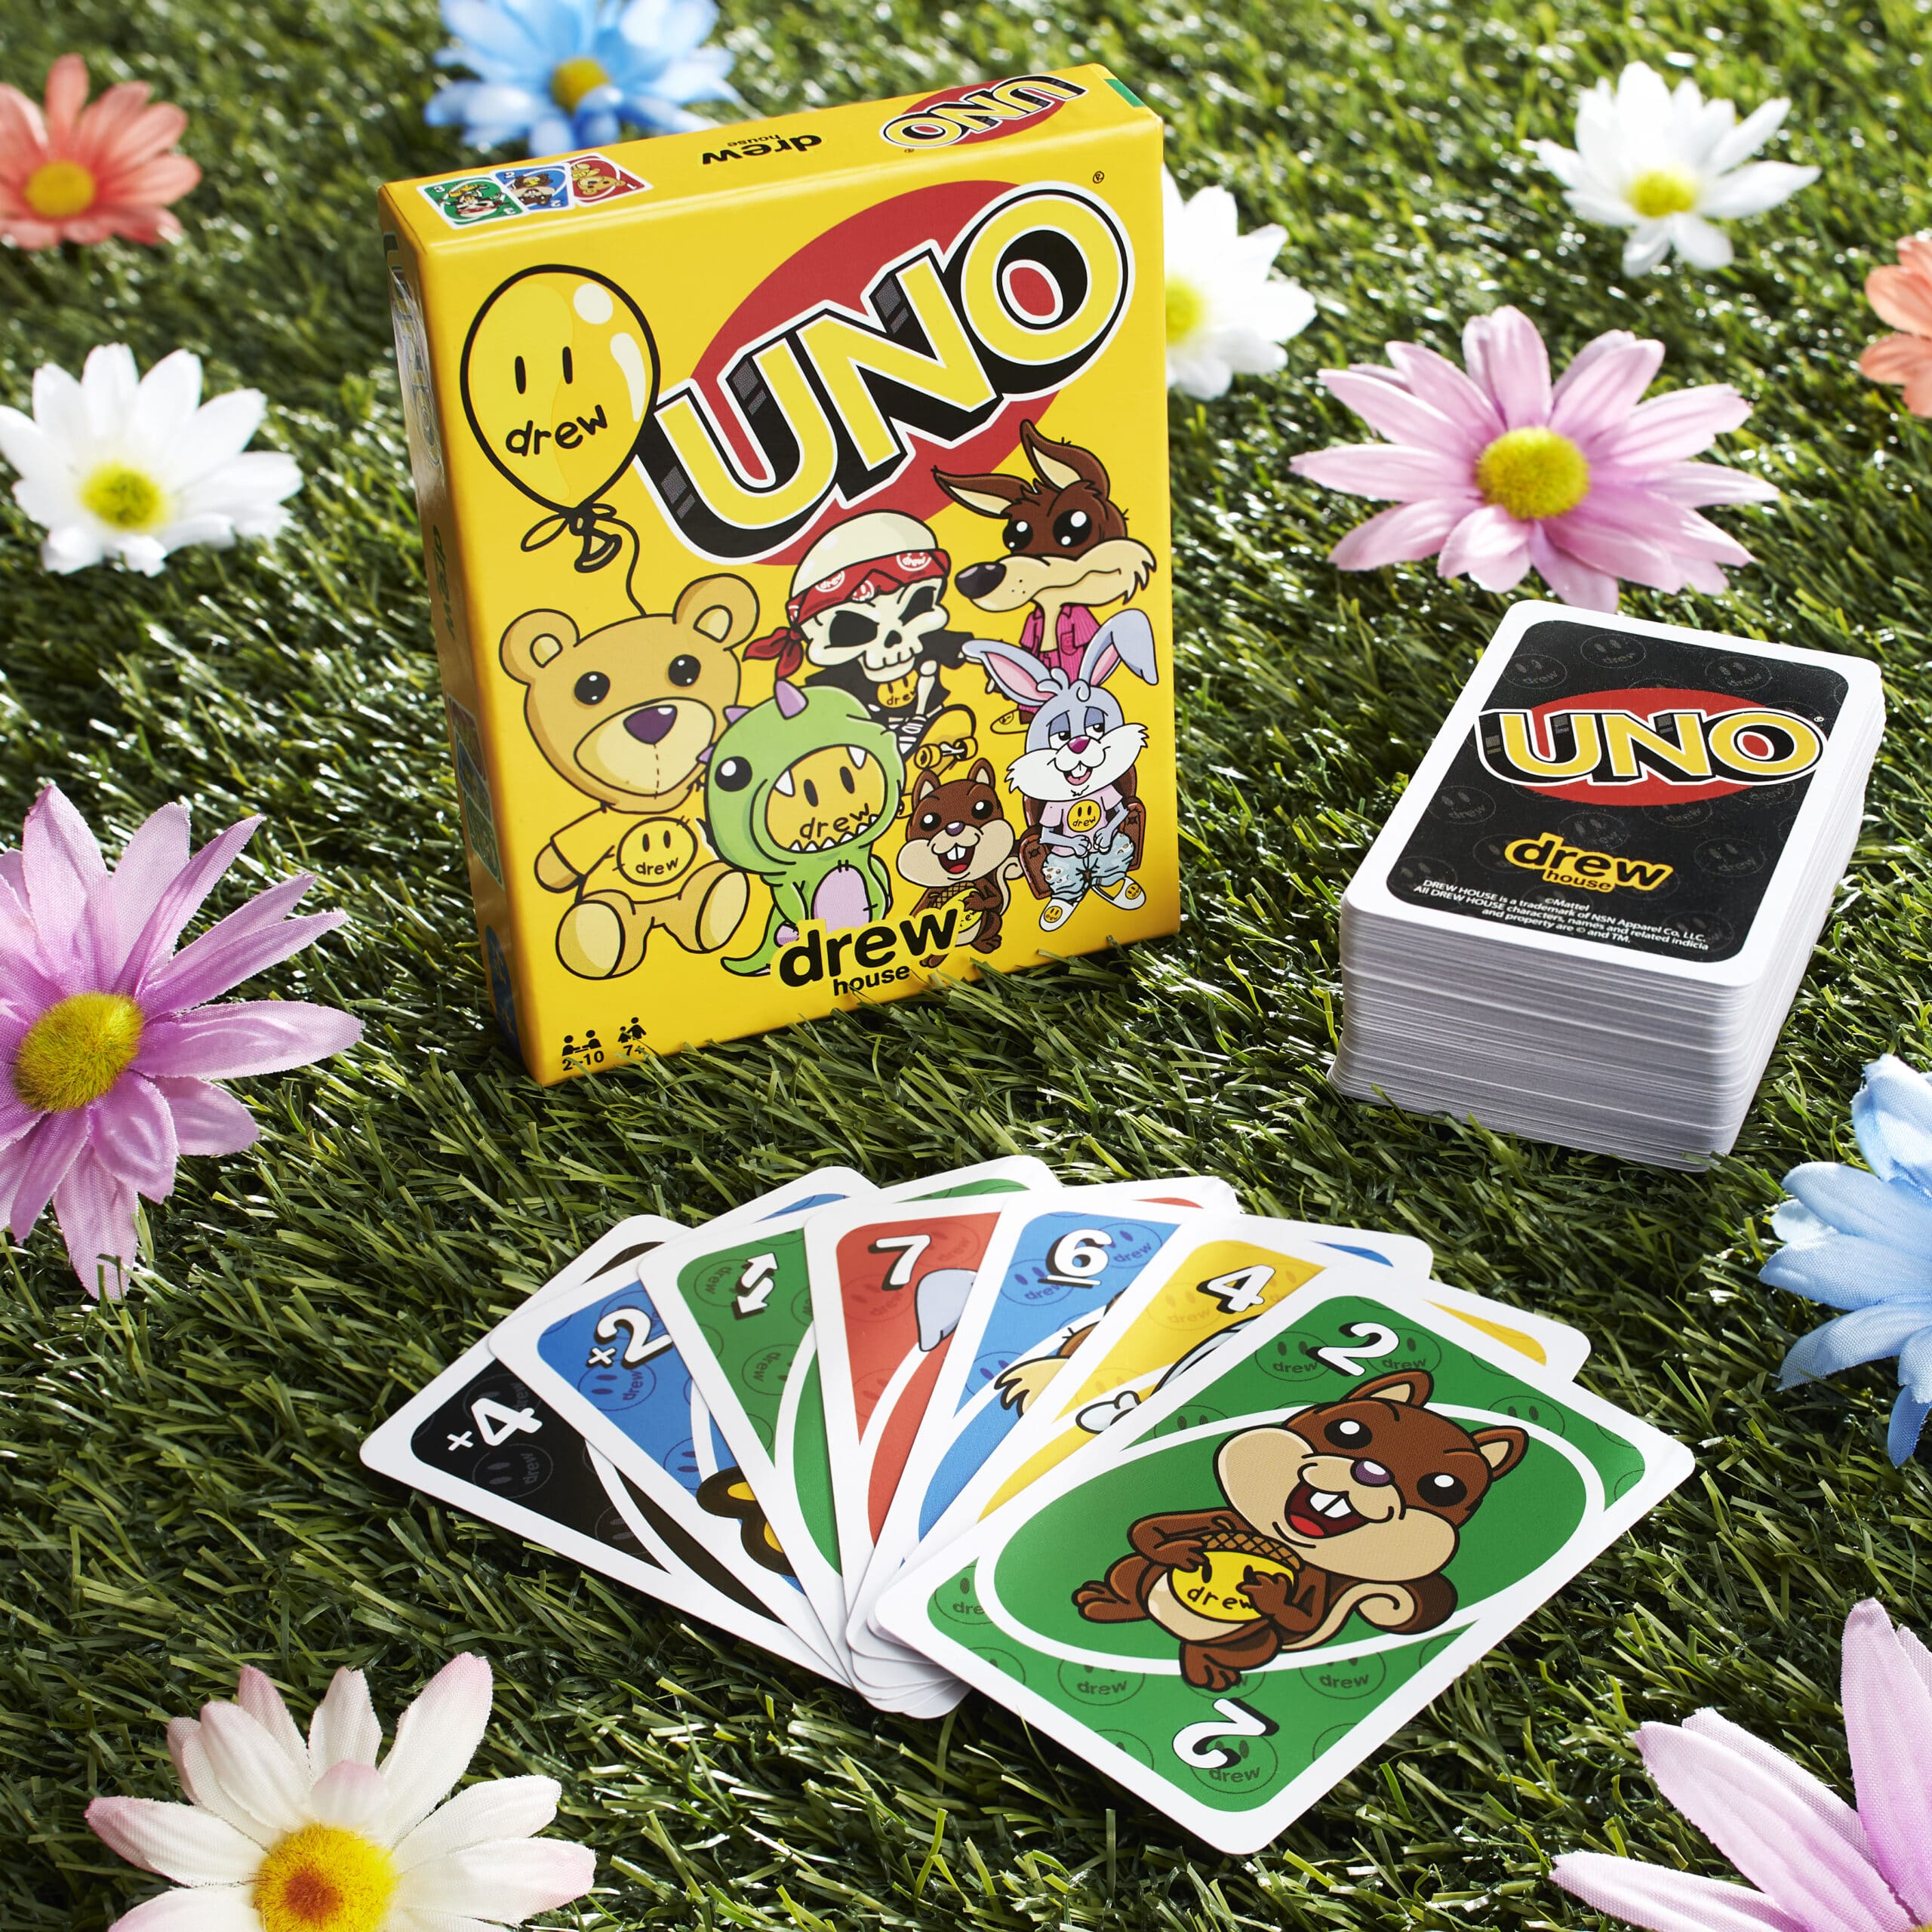 UNO teams up with Justin Bieber's drew house for a limited-edition card deck 14